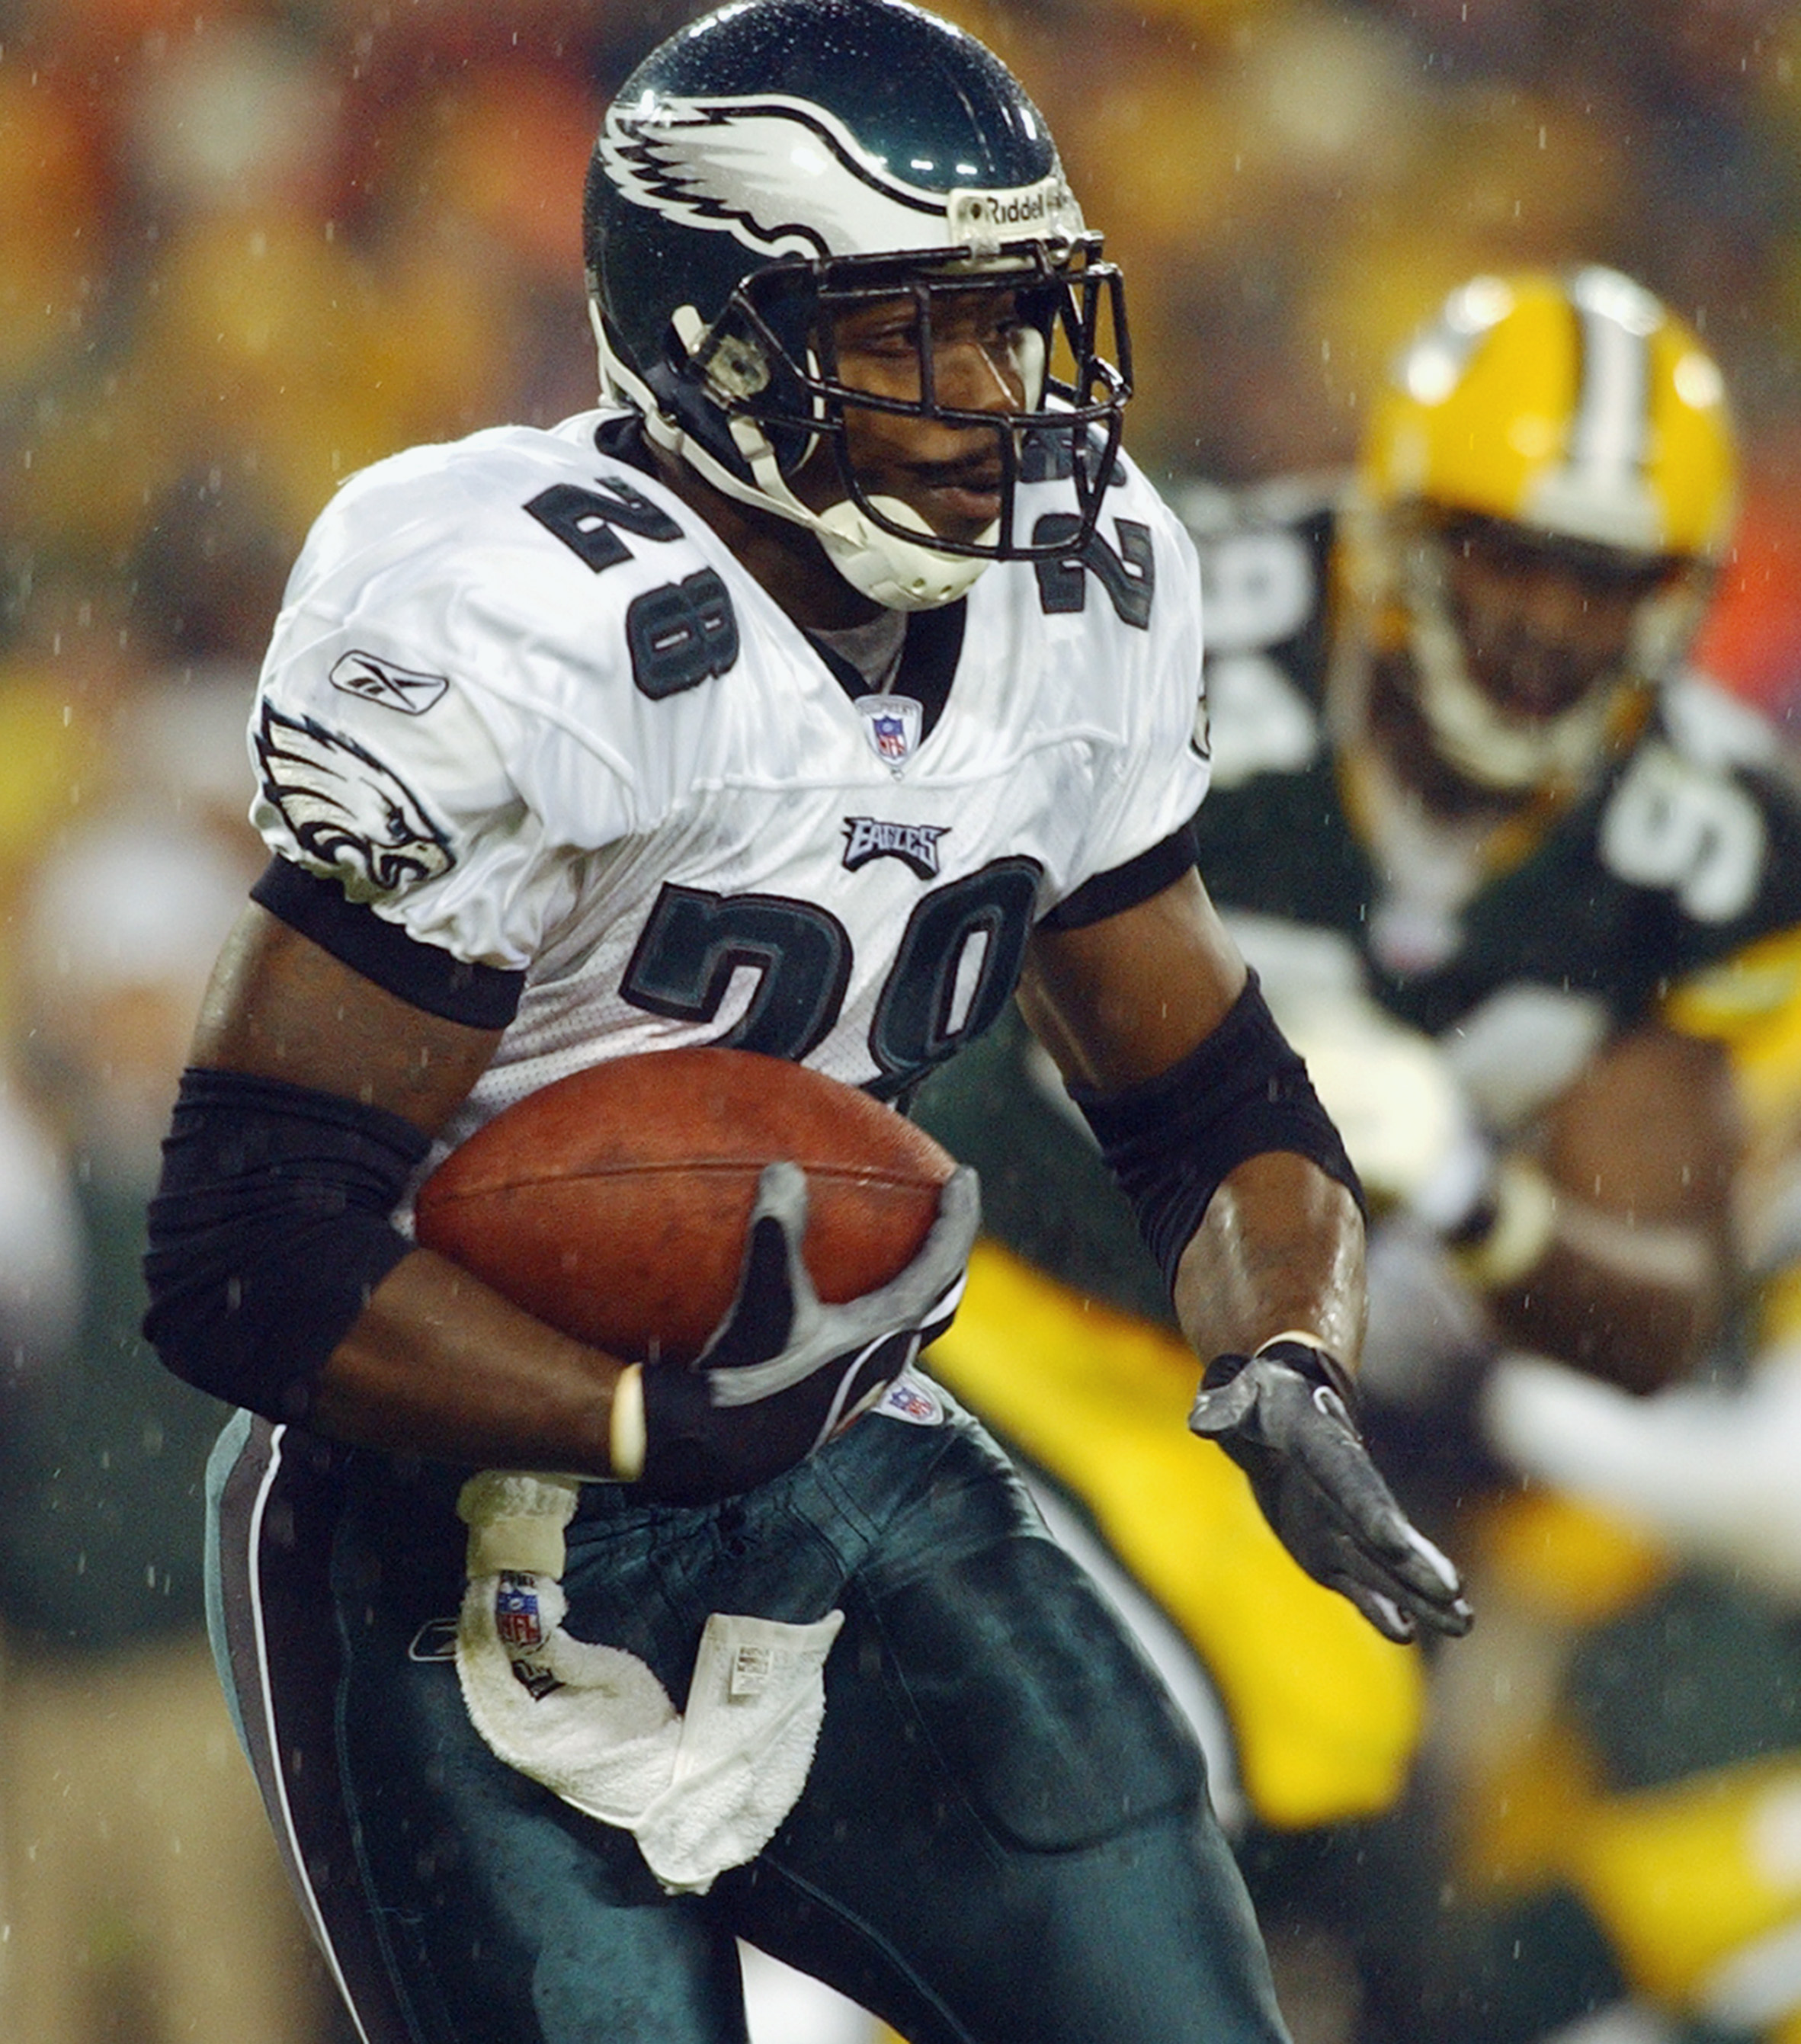 GREEN BAY, WI - NOVEMBER 10:  Running back Correll Buckhalter #28 of the Philadelphia Eagles runs the football against the Green Bay Packers on November 10, 2003 at Lambeau Field in Green Bay, Wisconsin. The Eagles defeated the Packers 17-14. (Photo by Jo